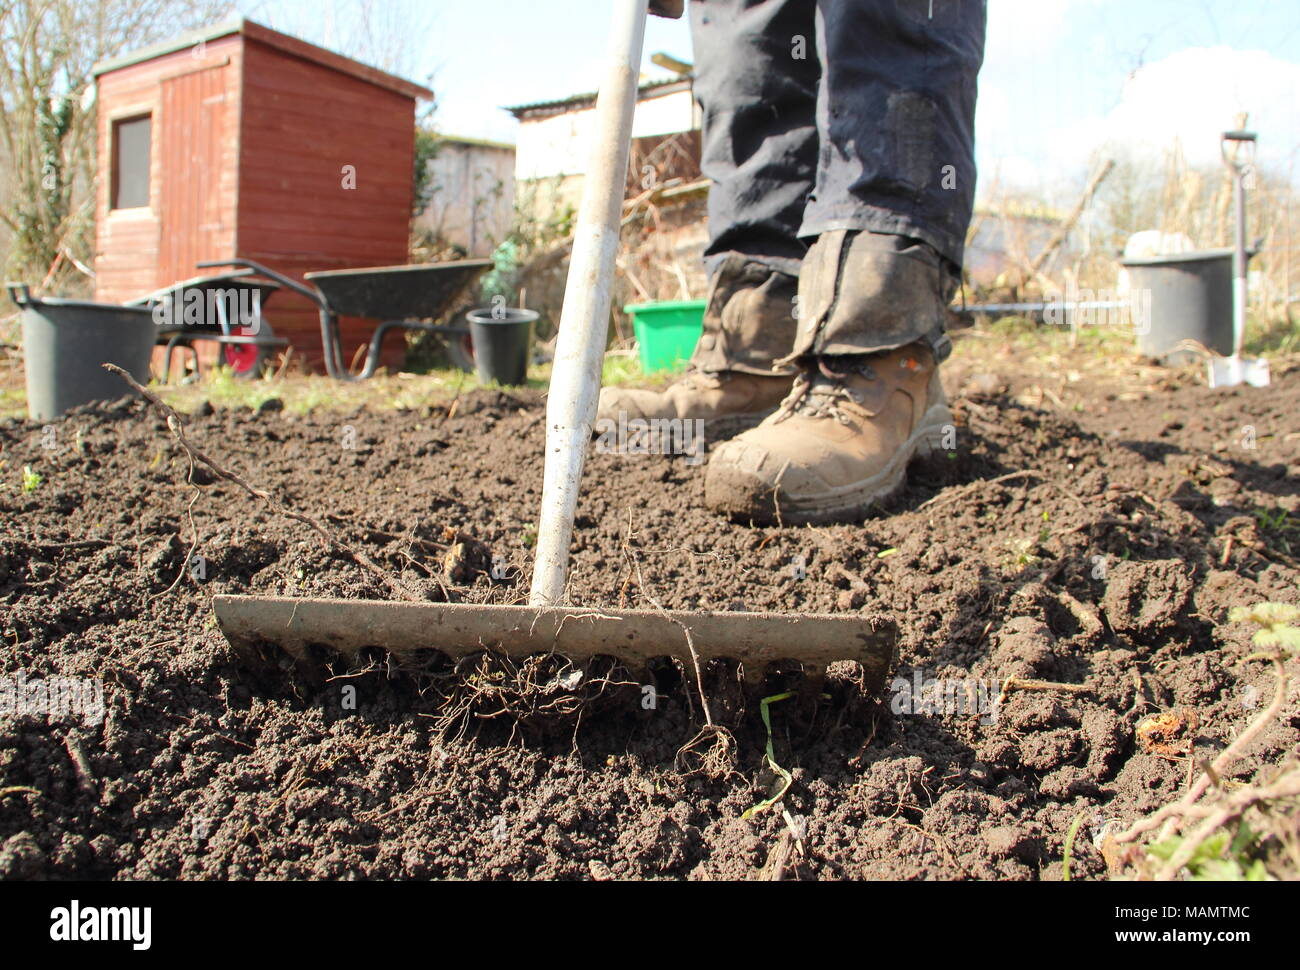 Gardener uses level-head rake to break up soil and remove weeds in a ...